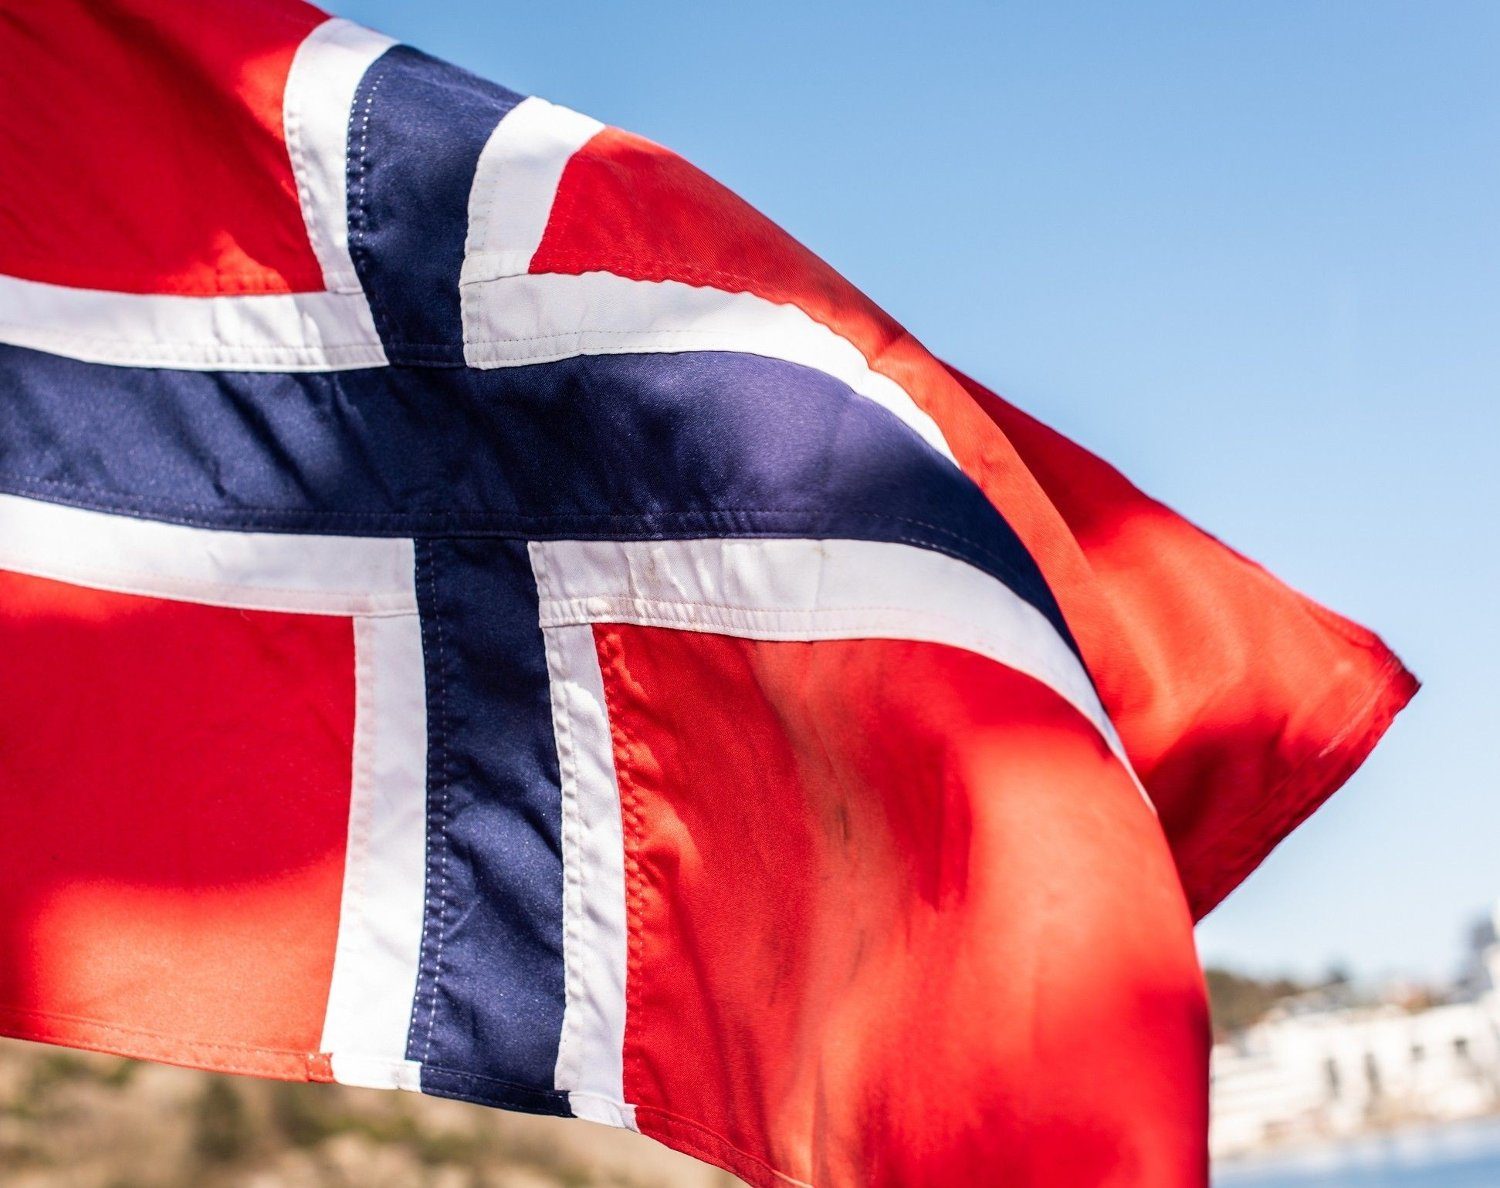 Flag of Norway waving in the wind Flag of Norway waving in the wind